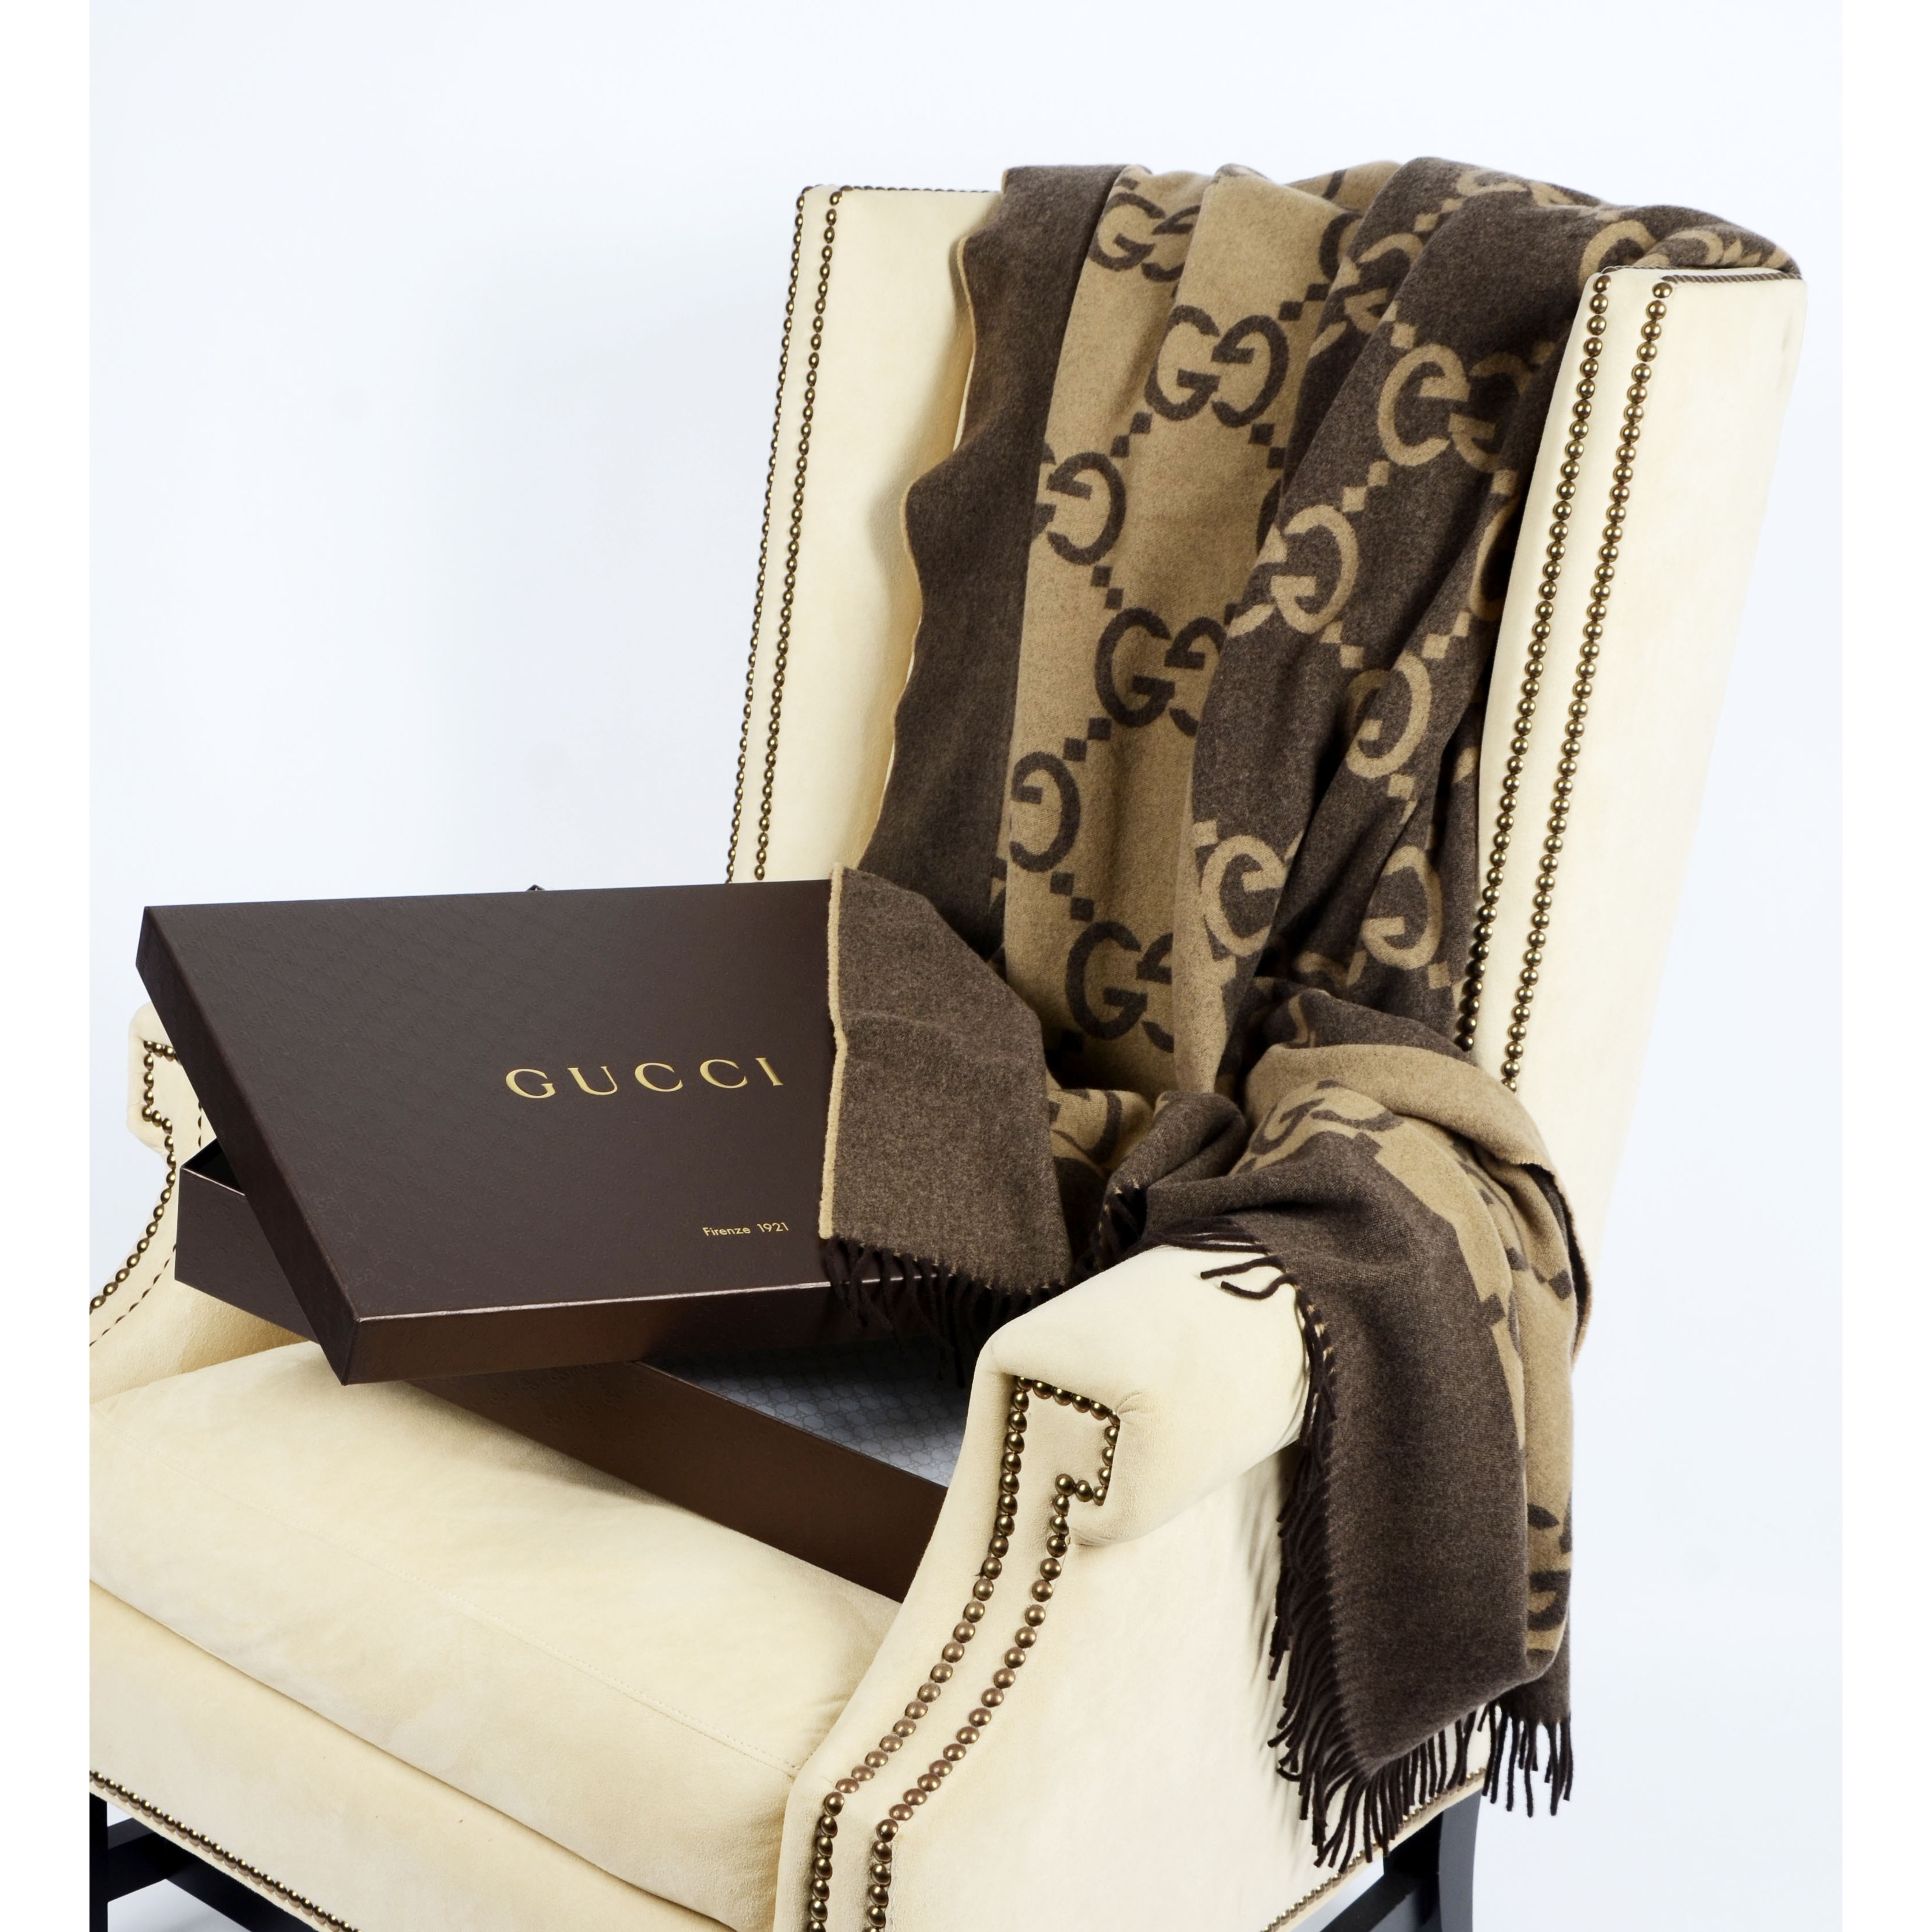 262d39c6d2f Shop Gucci Luxury Throw Blanket - Free Shipping Today - Overstock - 9793440